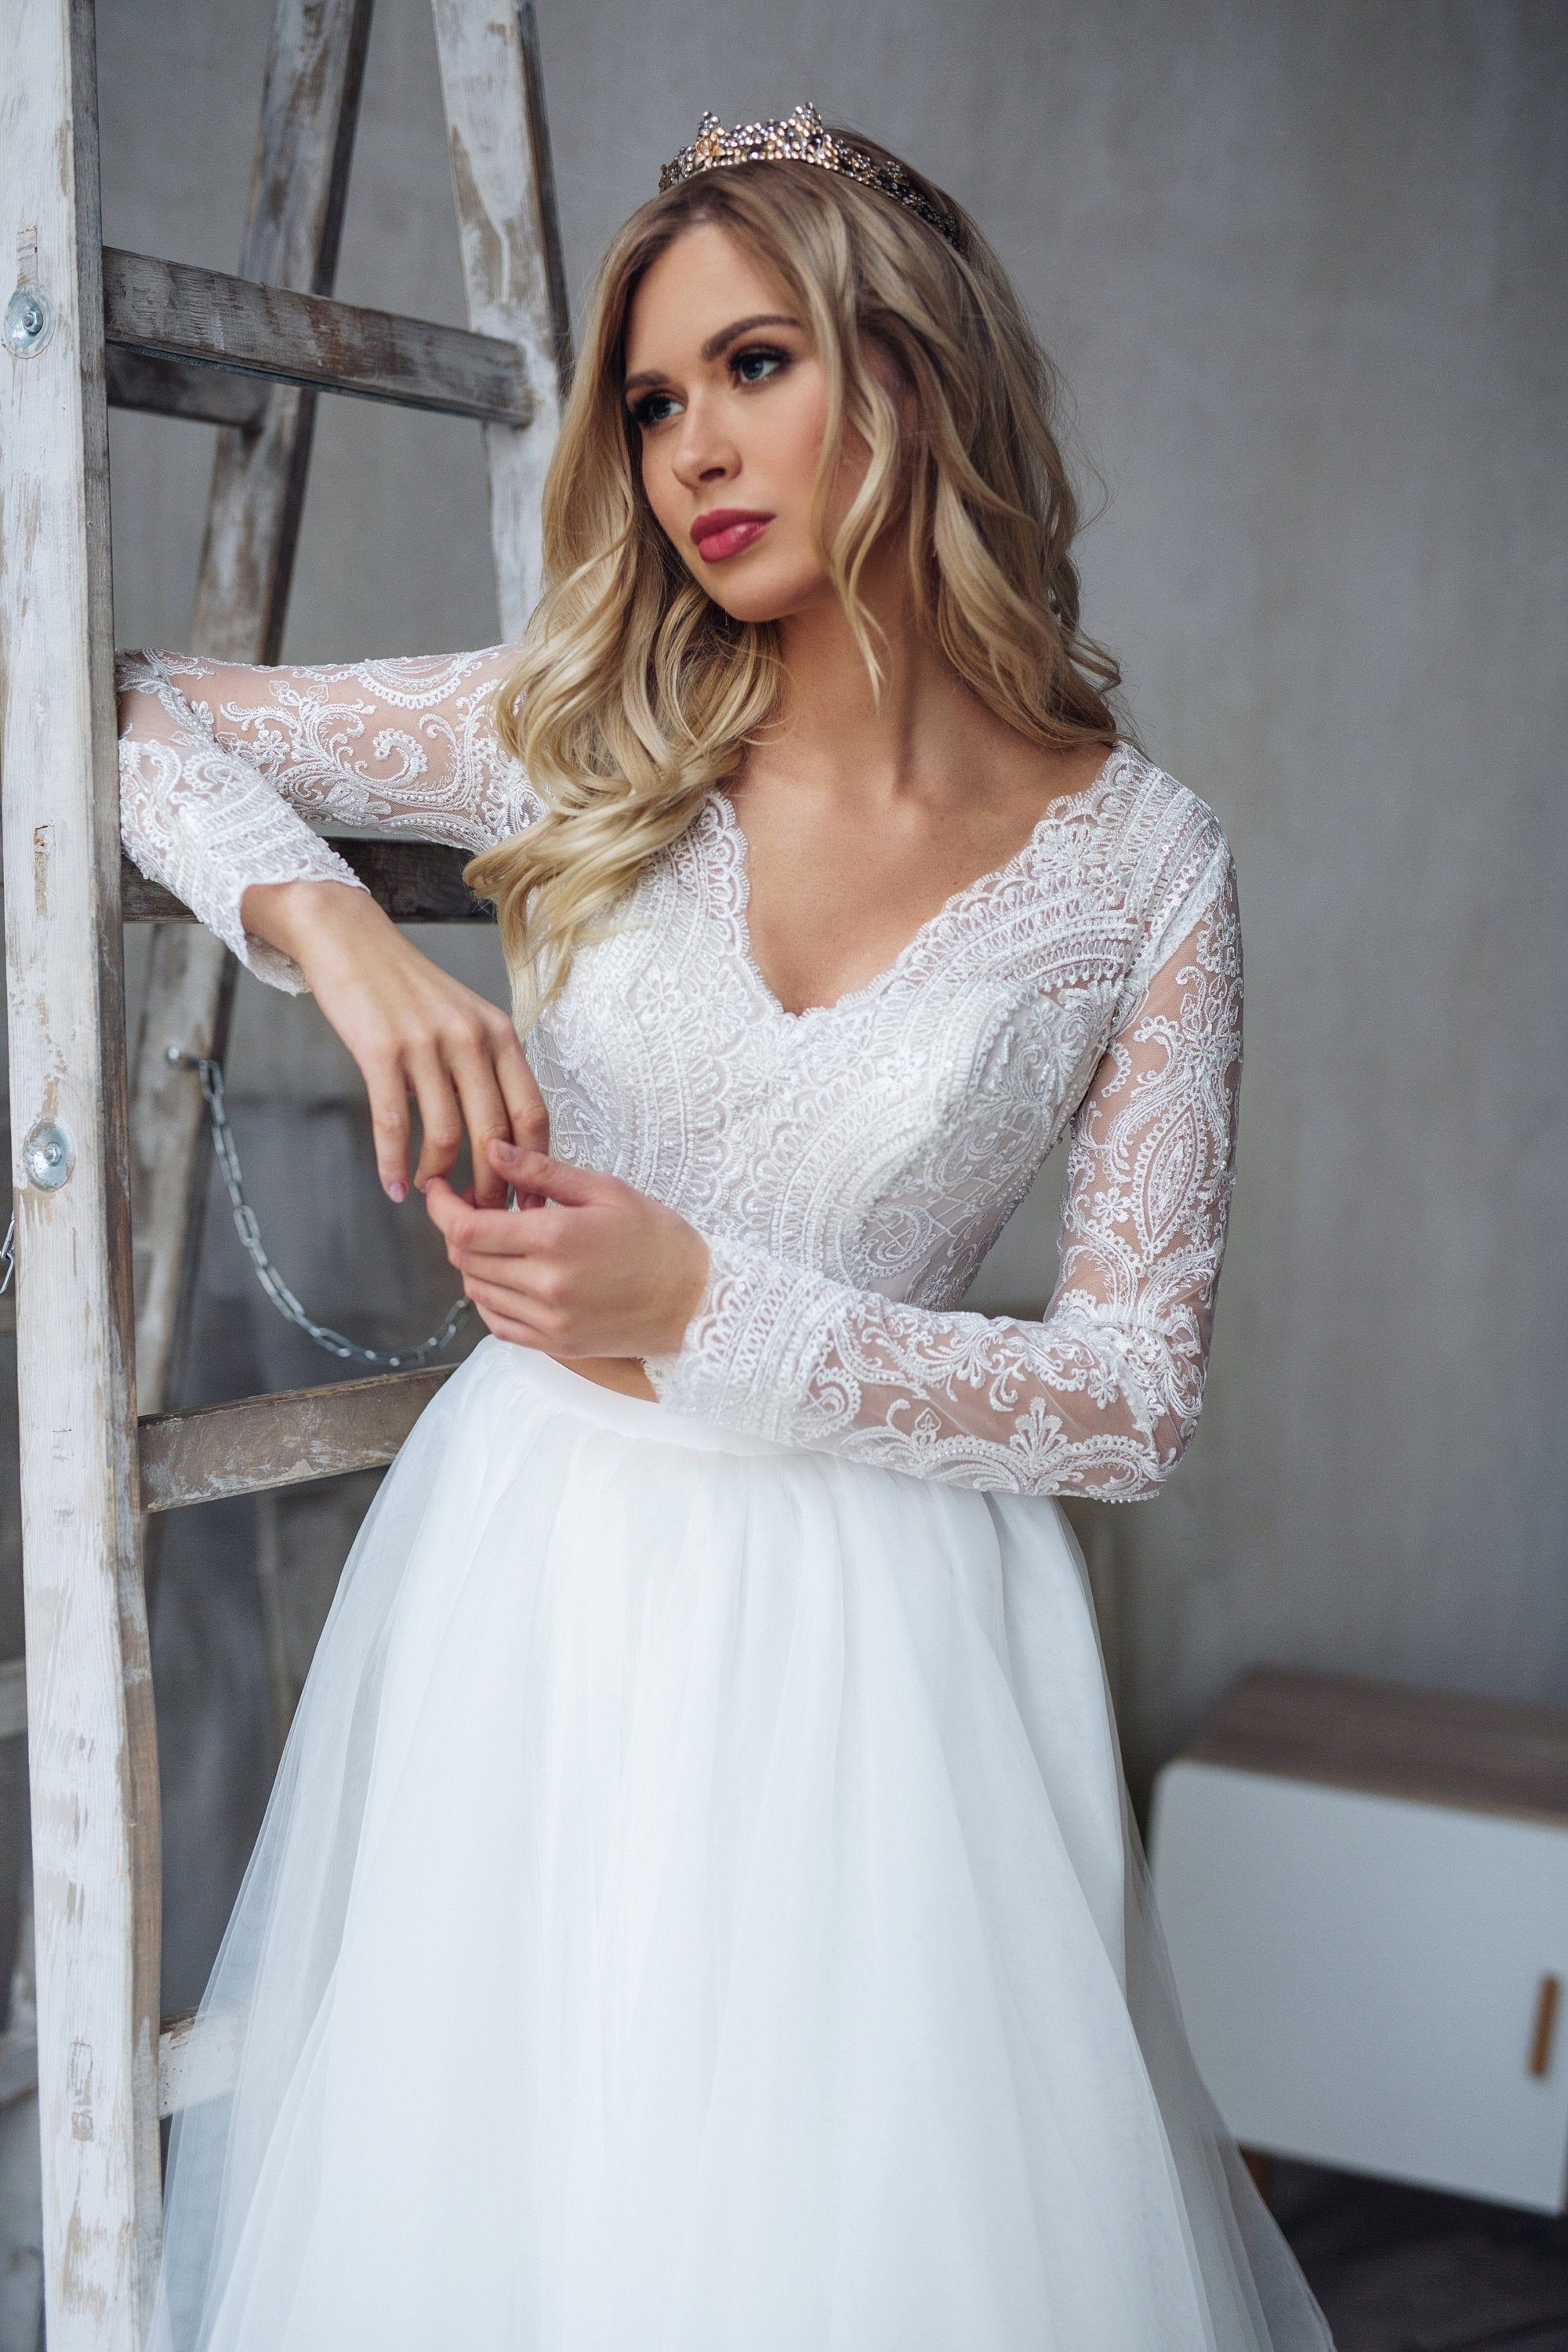 Tulle Long Sleeve Dress Lorelei Bridal Separates Top And Skirt